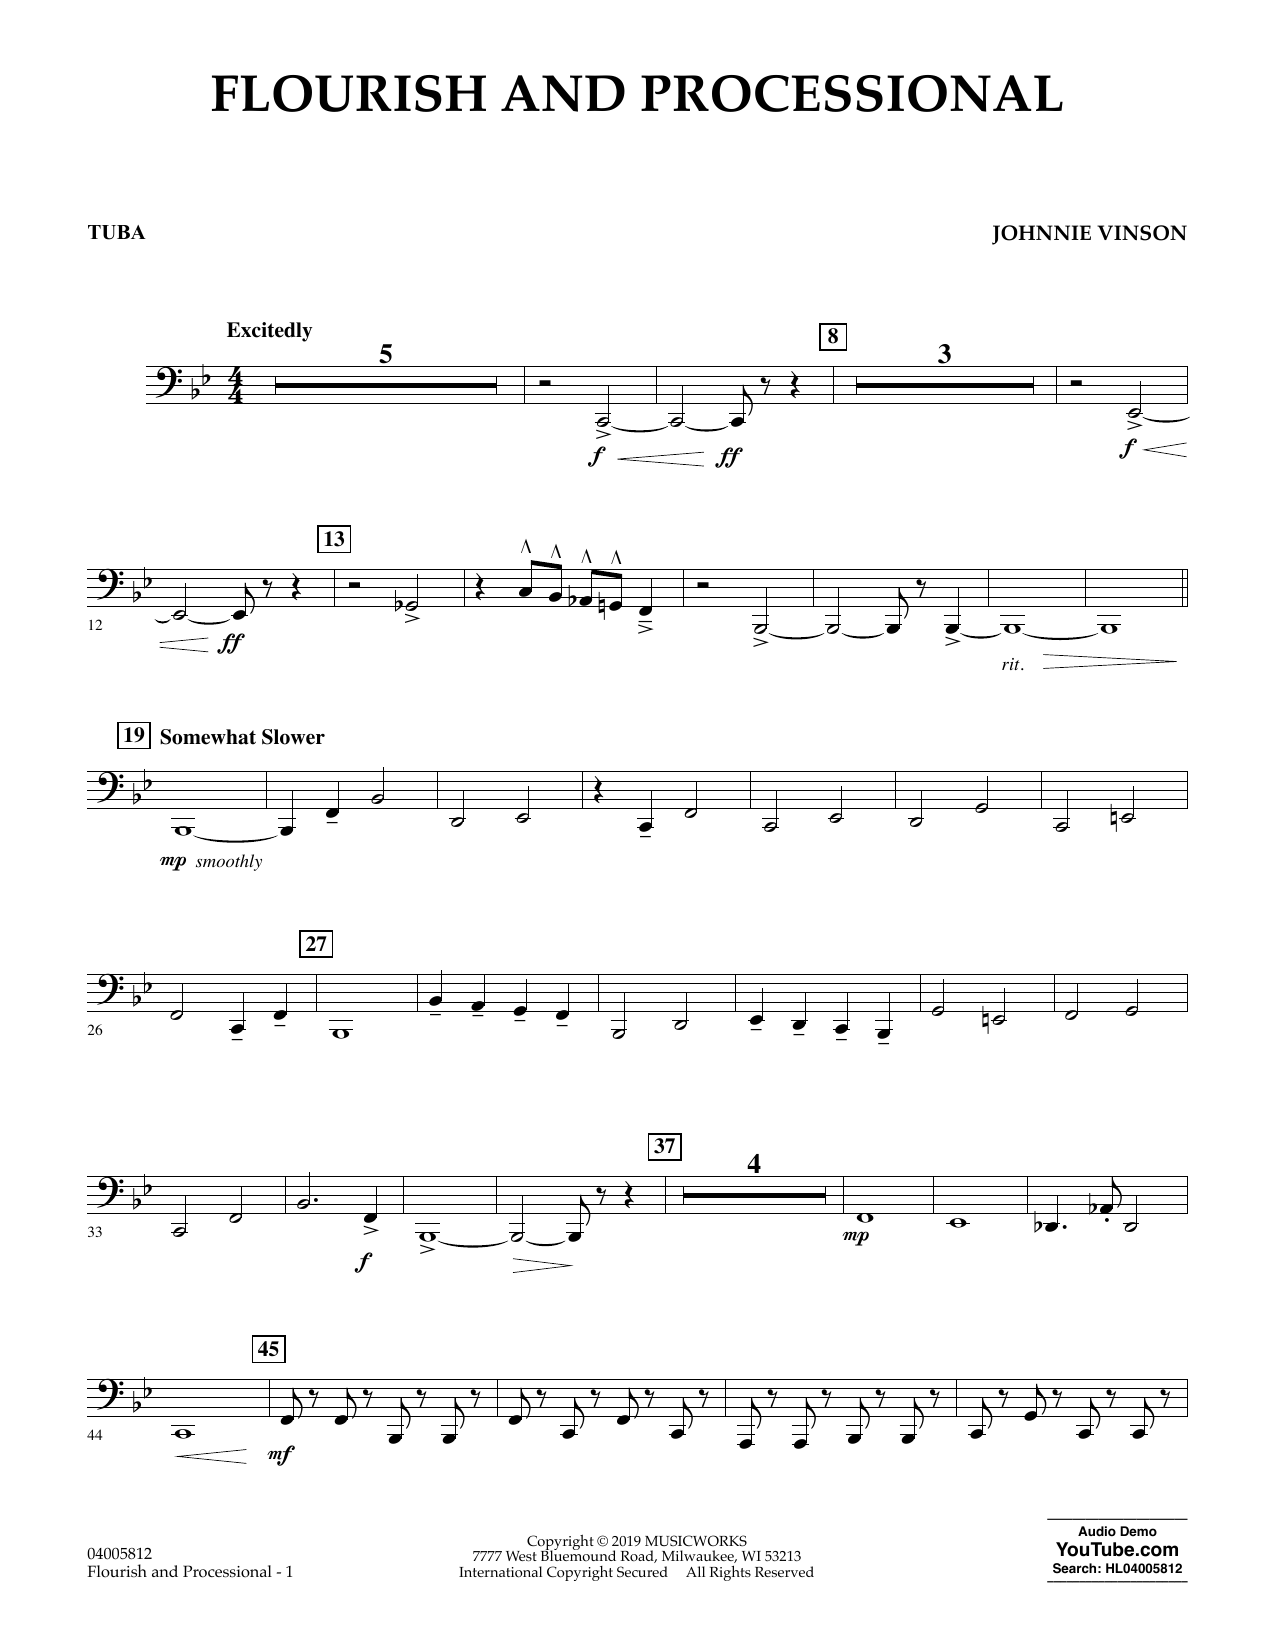 Johnnie Vinson Flourish and Processional - Tuba sheet music preview music notes and score for Concert Band including 2 page(s)